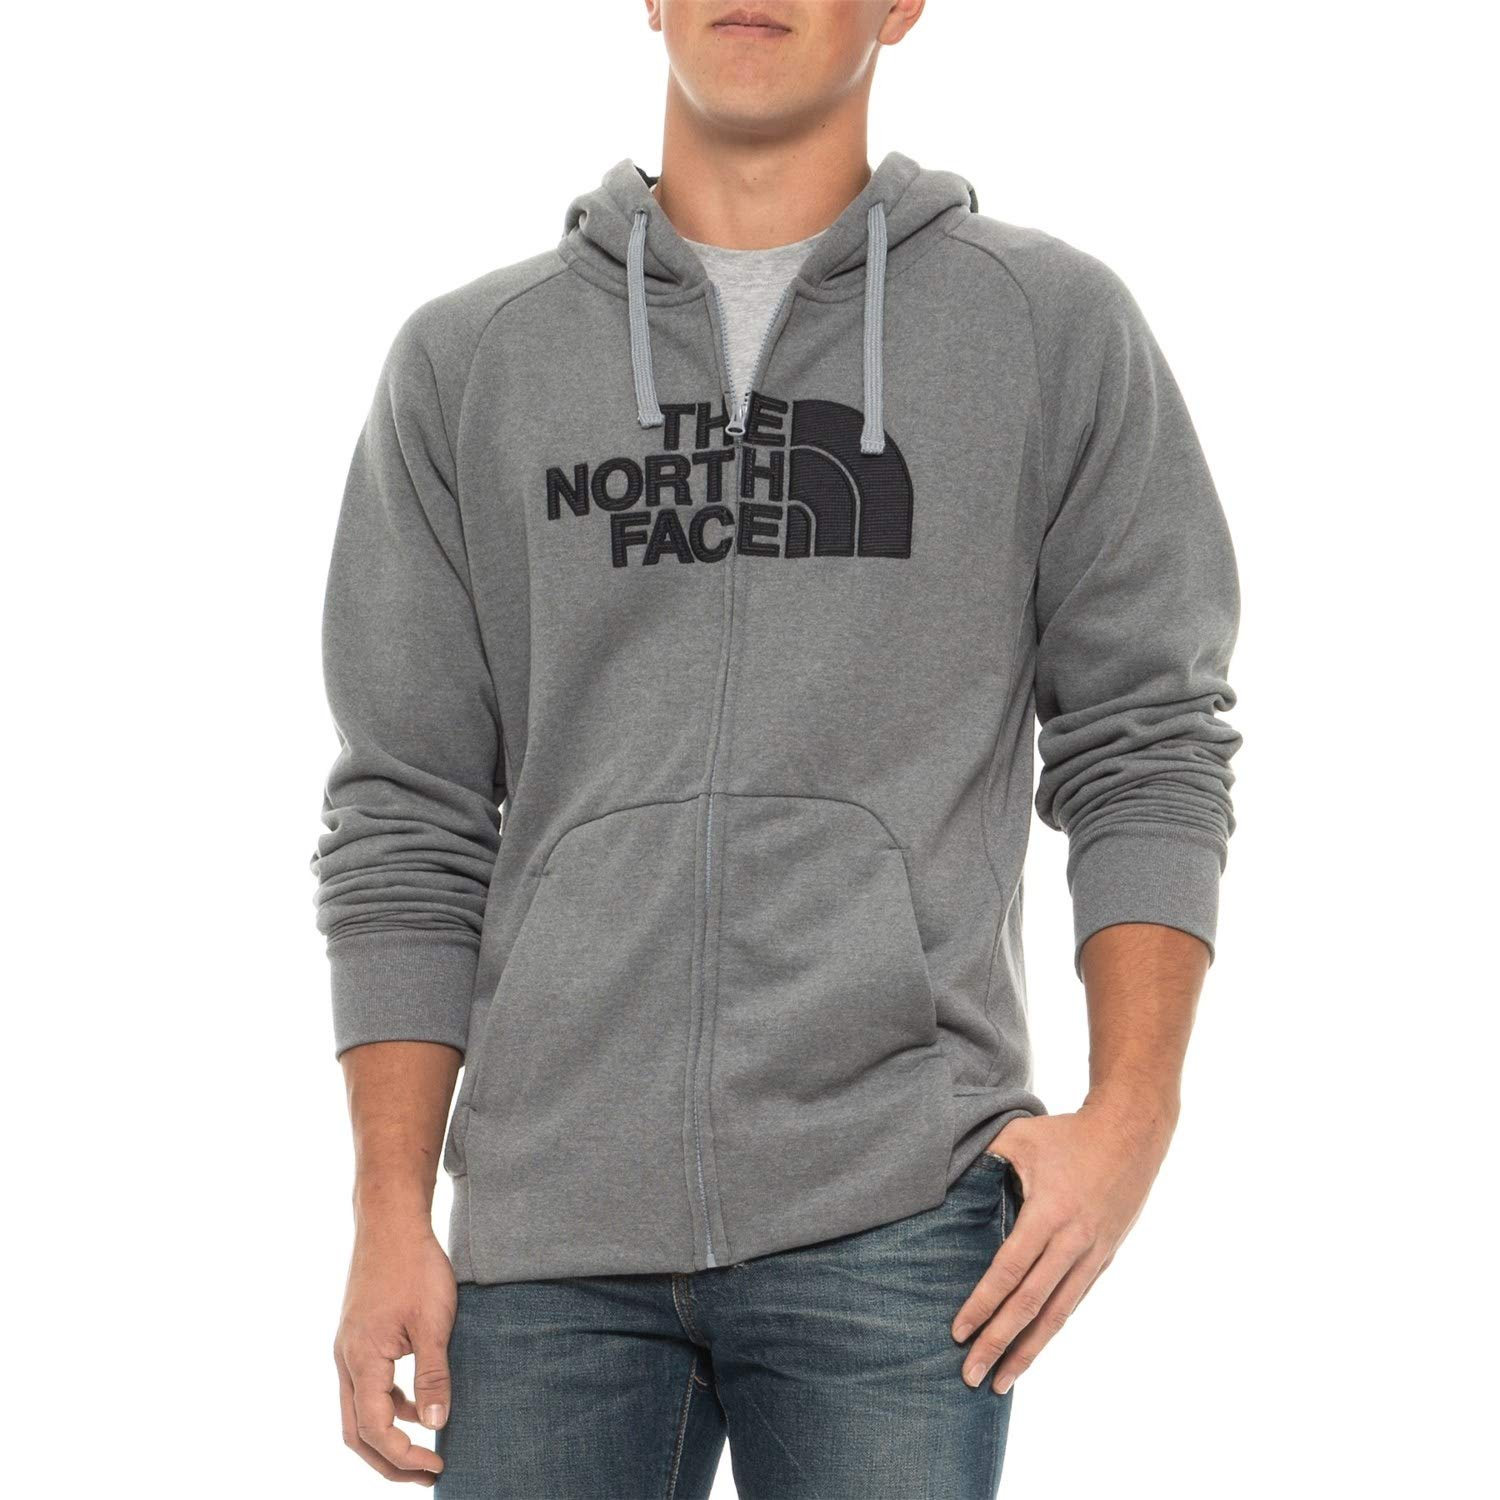 1c3bc3230 The North Face Men's Avalon Half Dome Full Zip Hoodie Sweatshirt